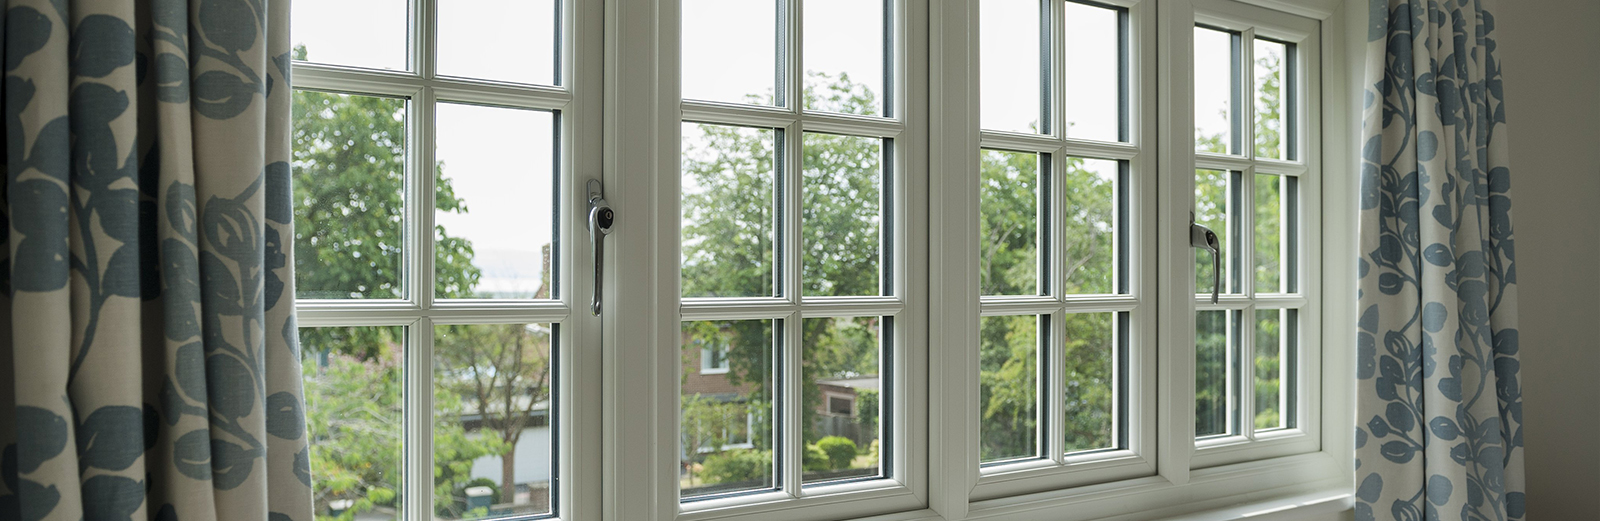 Double Glazing Bicester